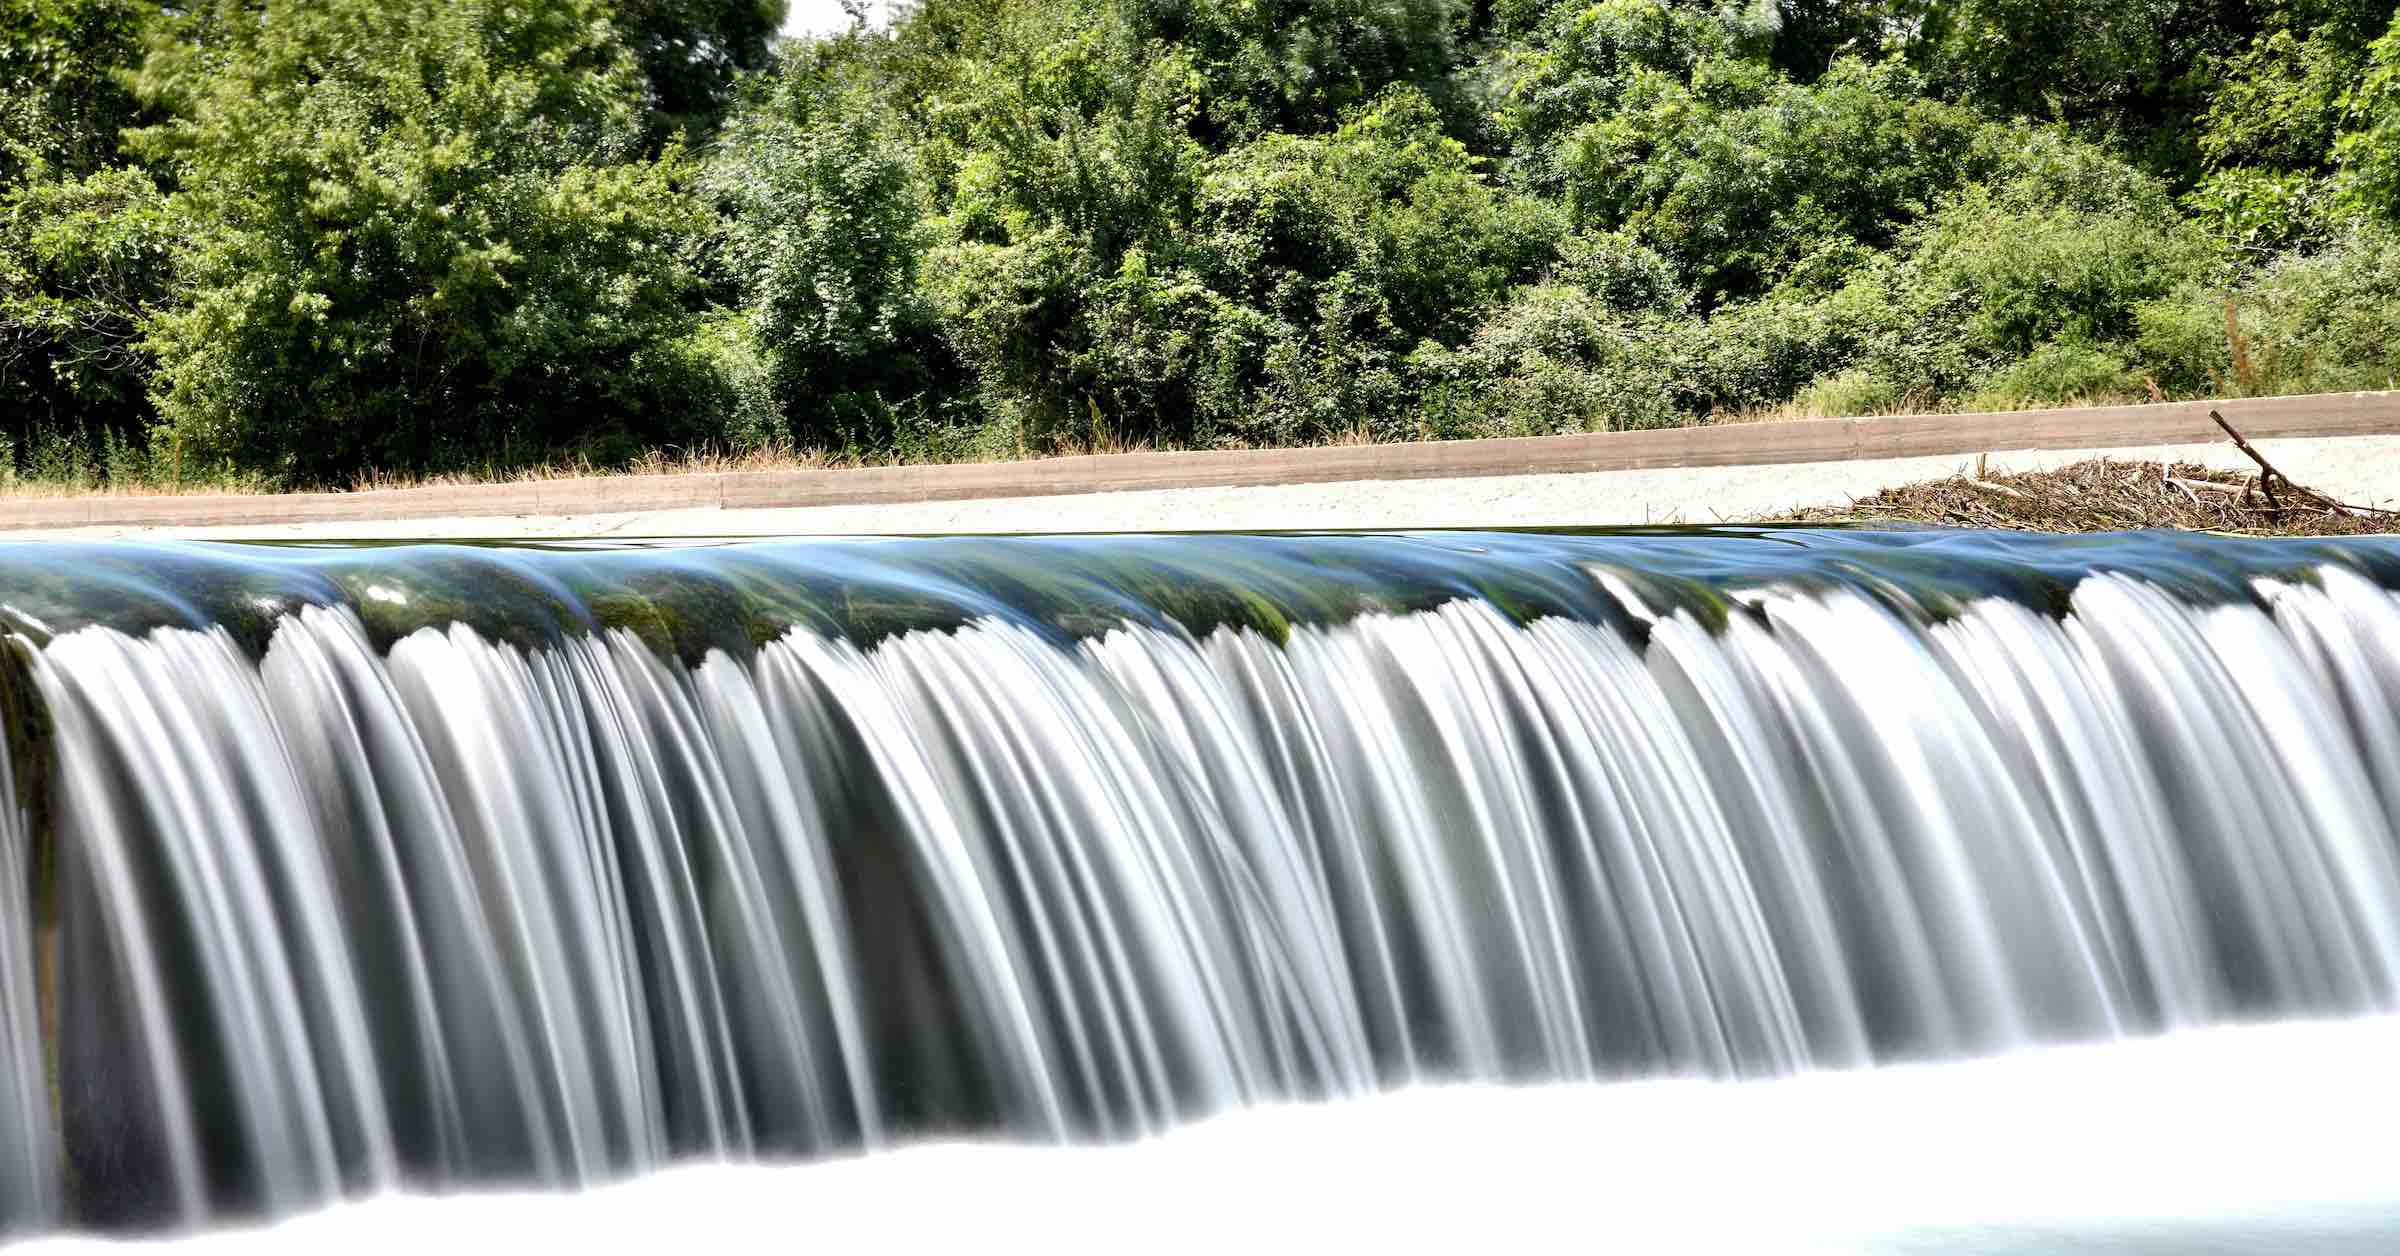 Time-lapse photo of water cascades